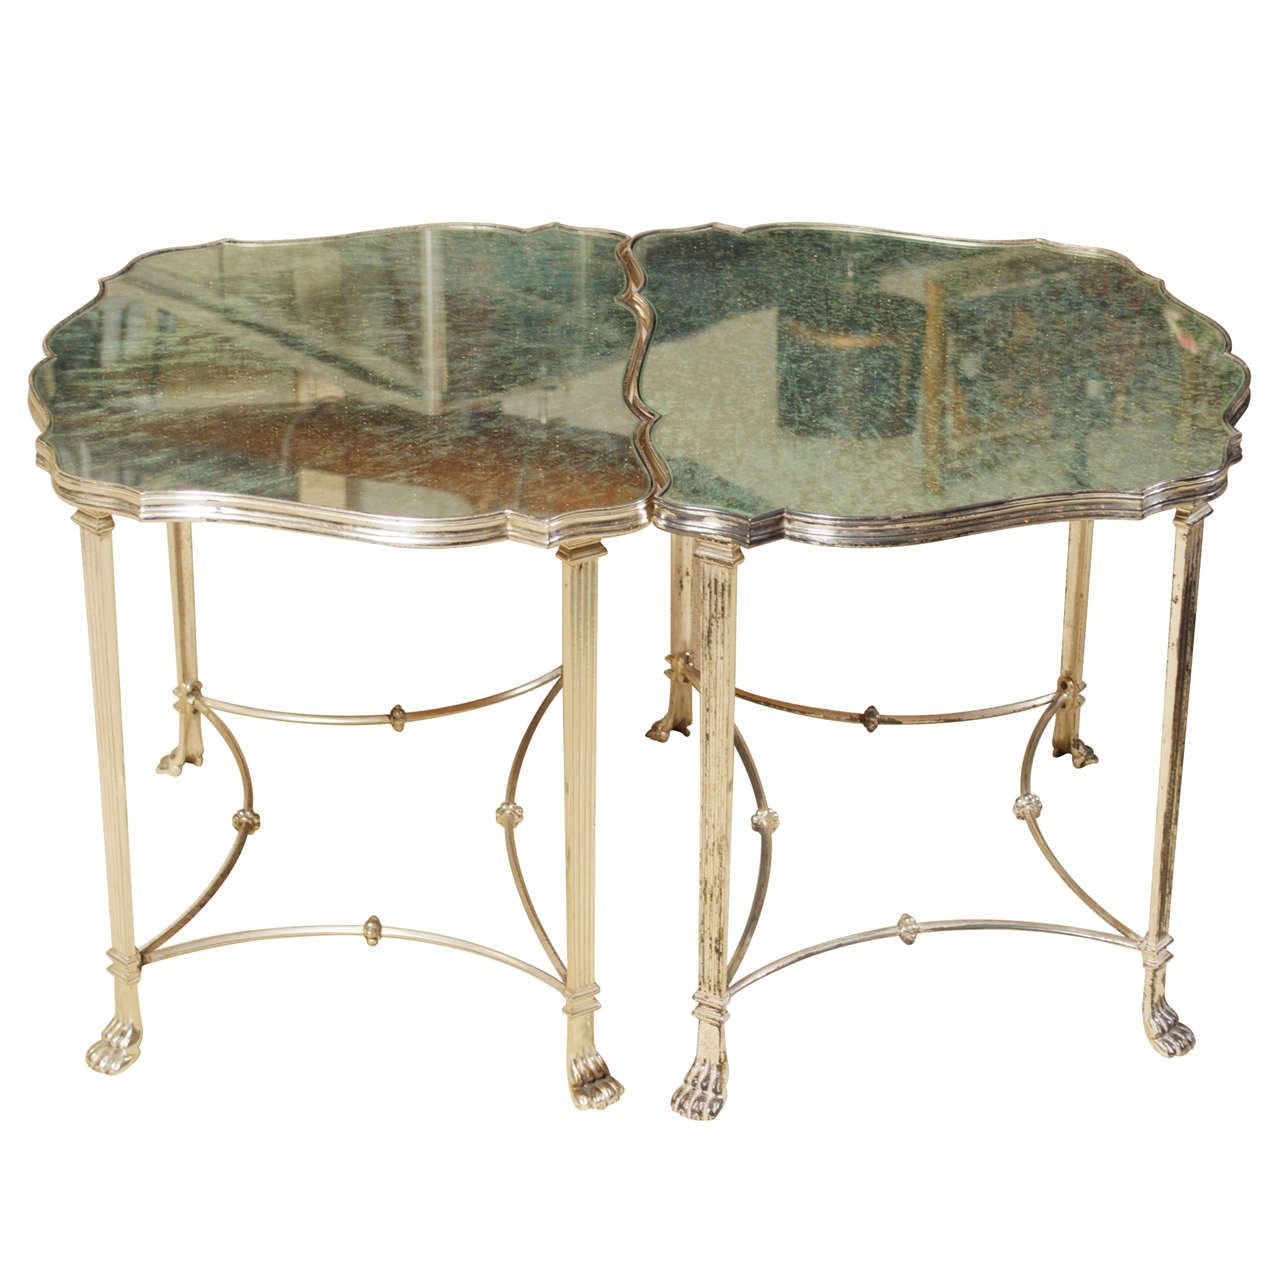 Pair Neo Classical Mirrored Silver Plated French Cocktail/ Side Tables